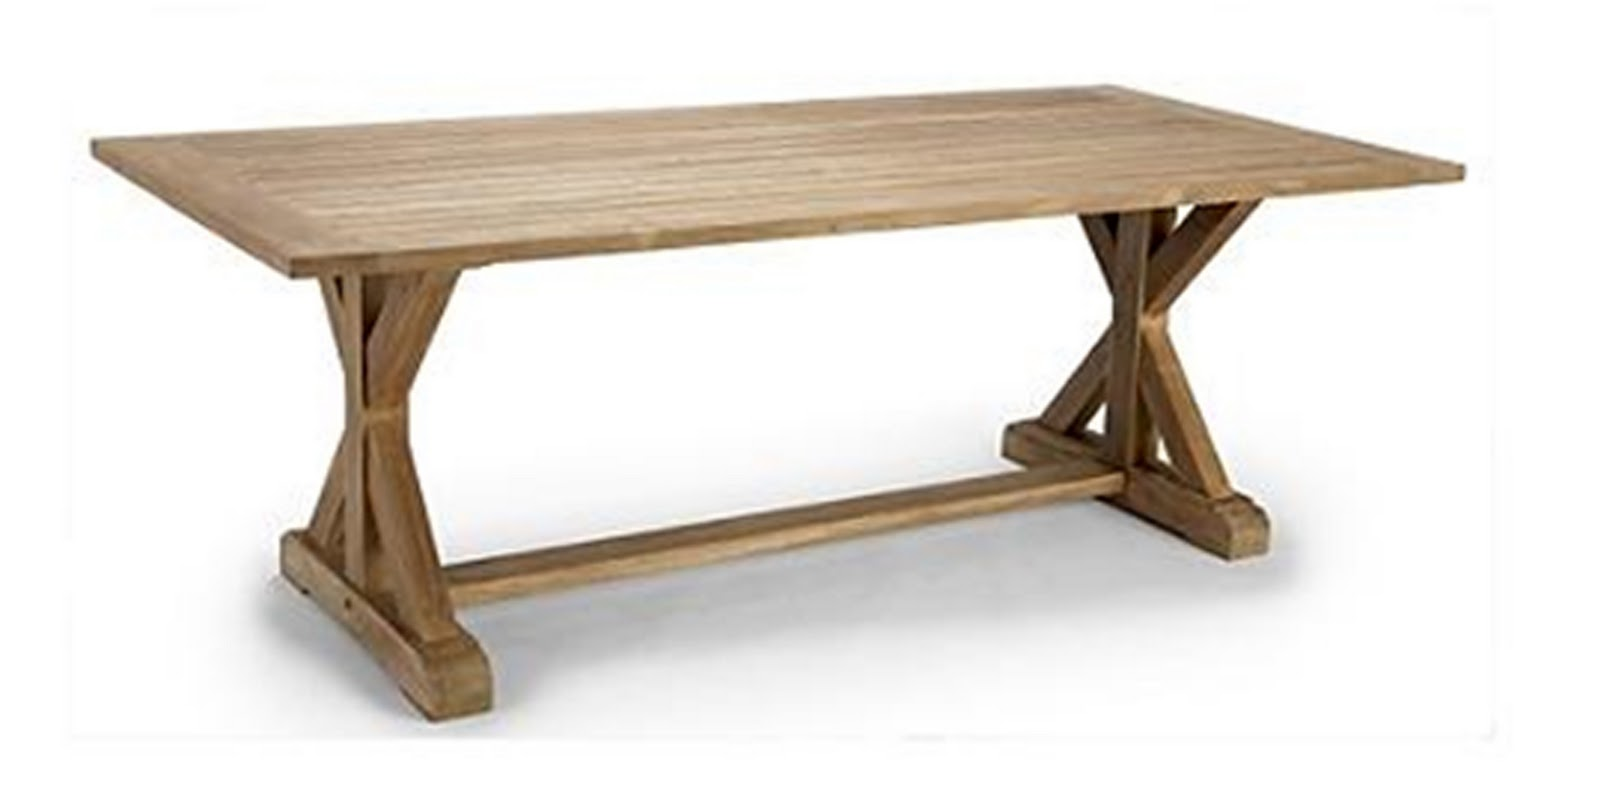 Amazing Outdoor Dining Table 1600 x 790 · 60 kB · jpeg